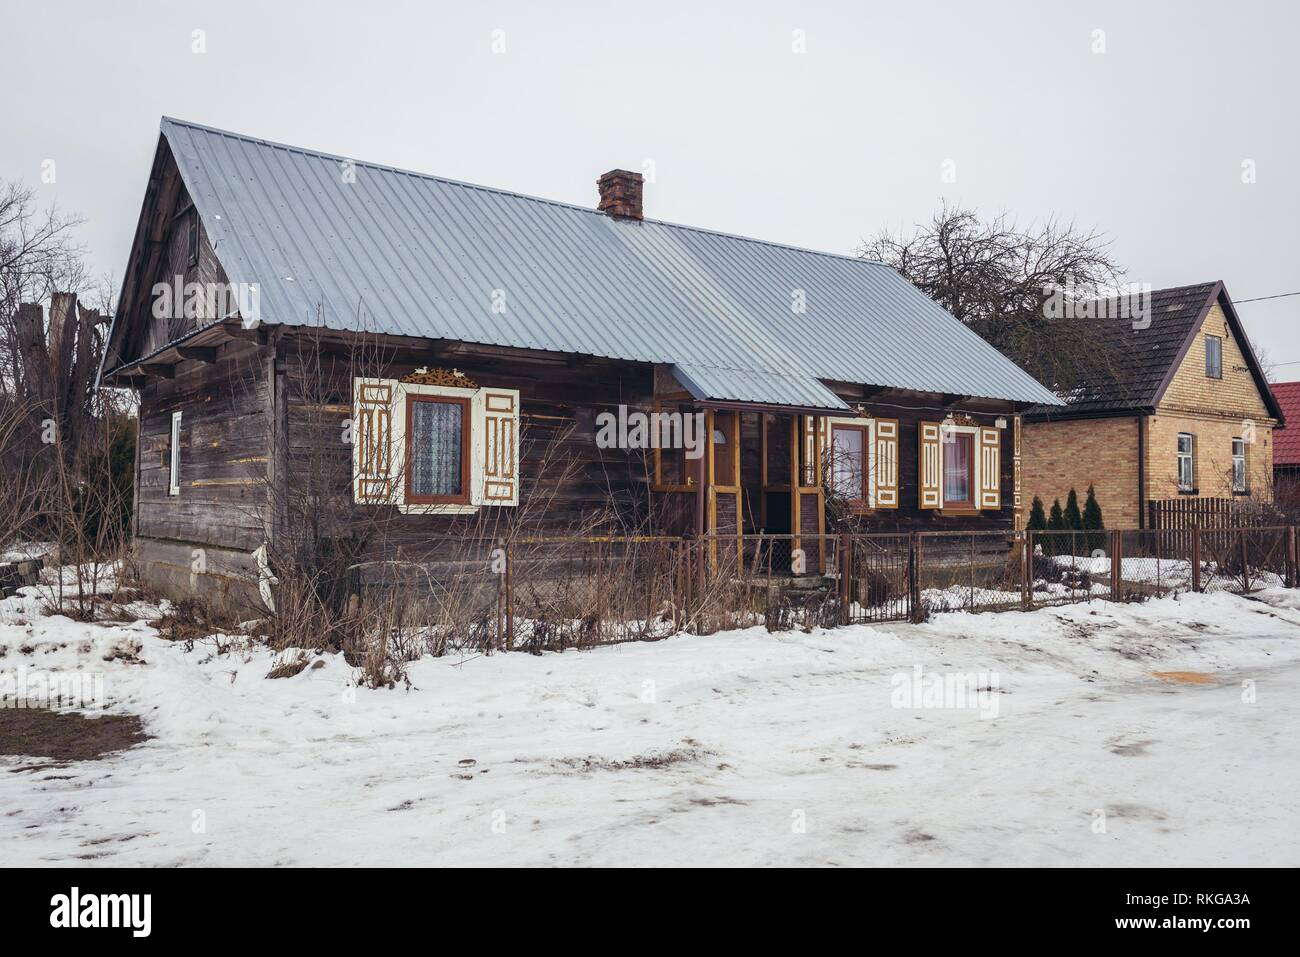 Wooden house in Soce village on so called Land of Open Shutters trail, famous for traditional architecture in Podlaskie Province, Poland. - Stock Image